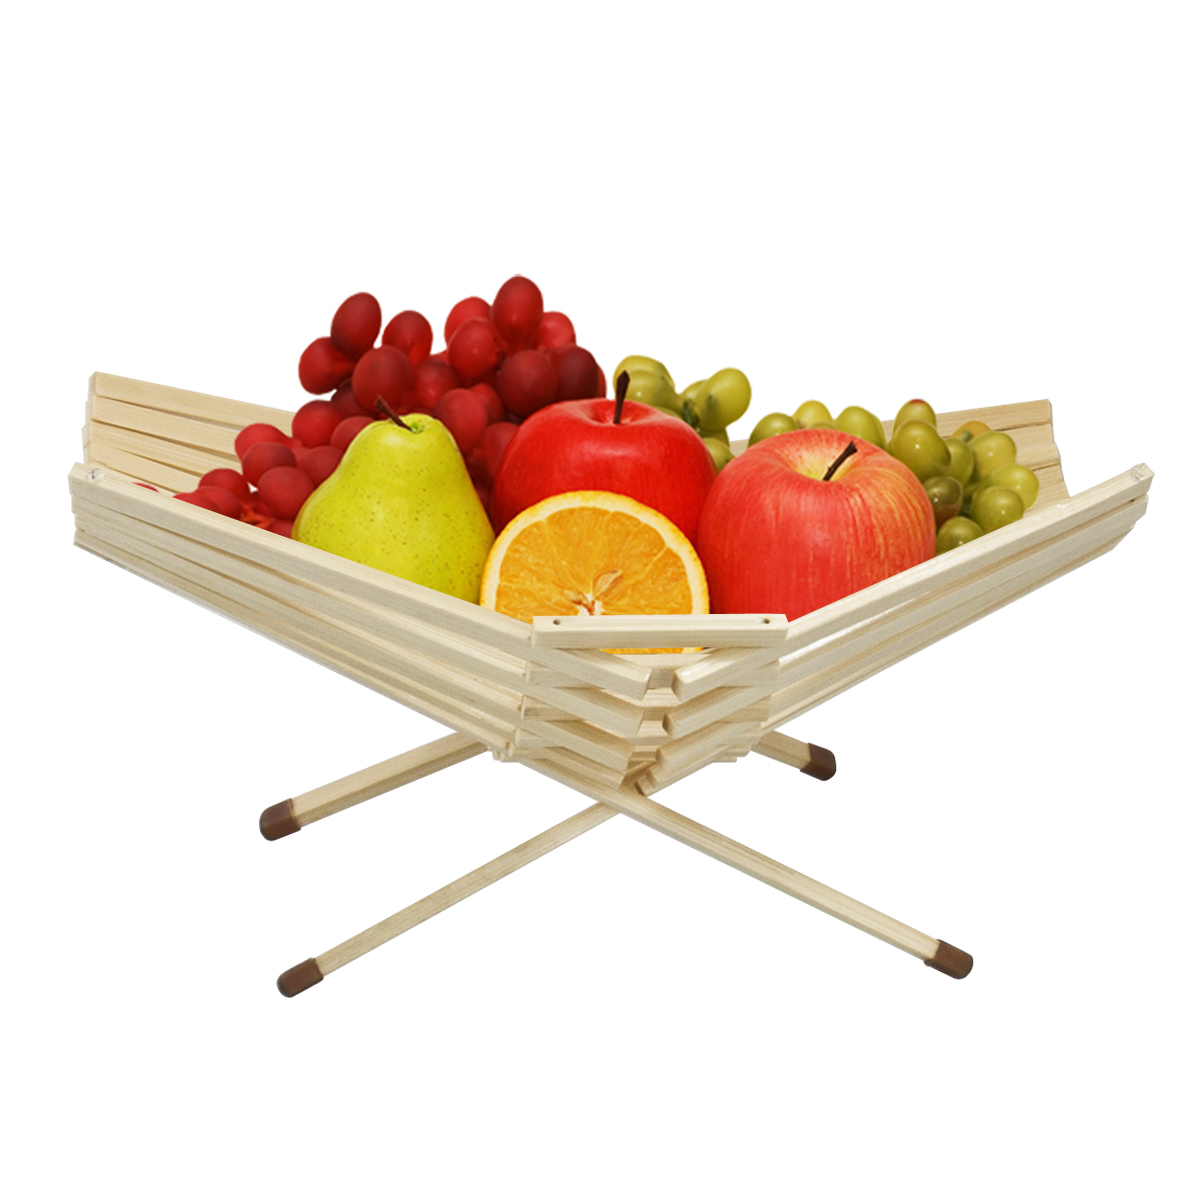 Table Top Fruit Basket Chef Collection Table Bowl Decor Bamboo Fruit Basket